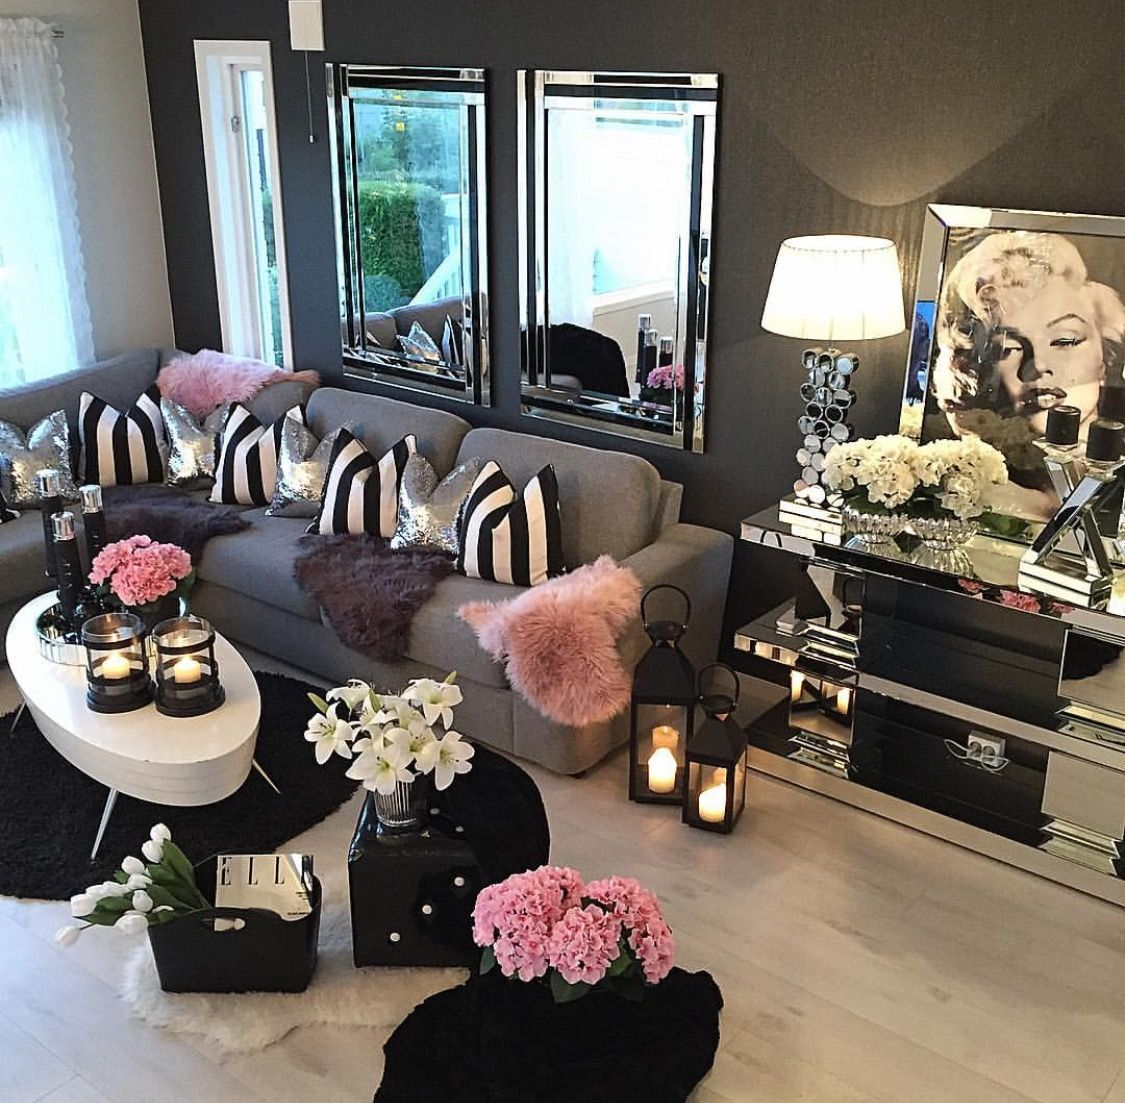 15 Beautiful Homes That Are Sure To Make Your Heart Skip A Beat J Adore Lexie Couture Feminine Living Room Living Room Decor Apartment Living Room Decor Cozy Living room ideas beautiful homes